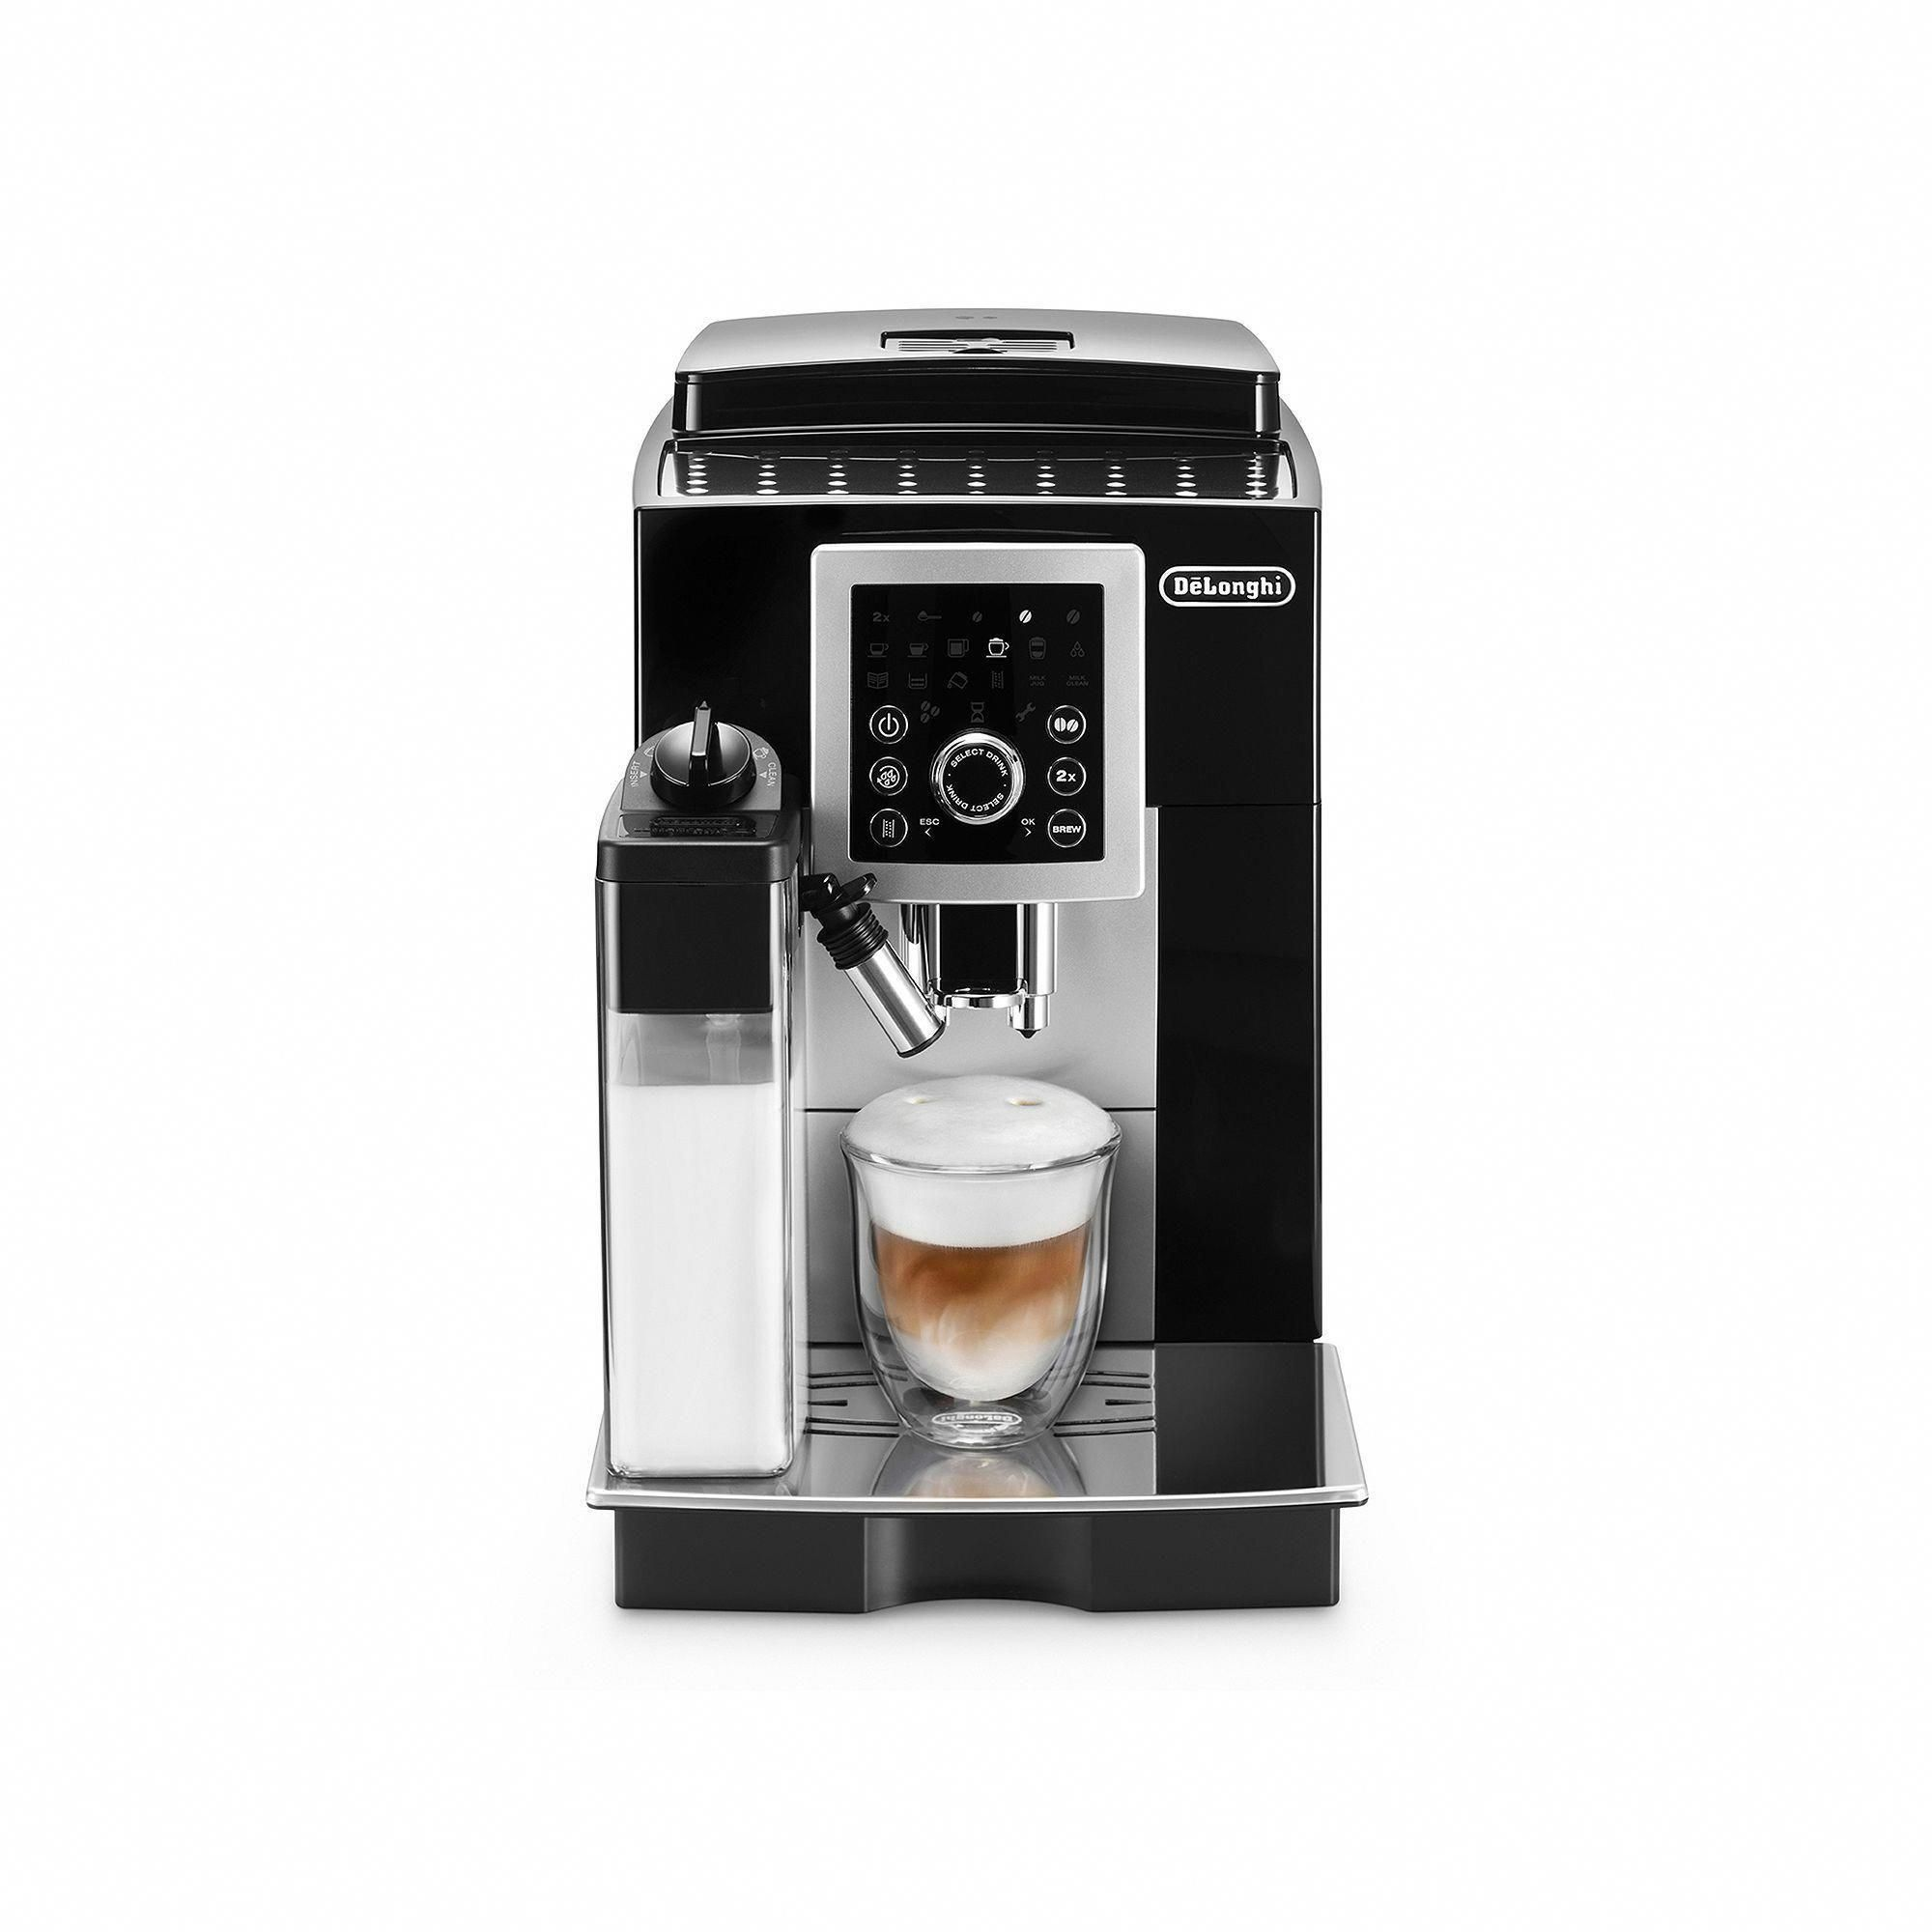 DeLonghi Cappuccino Machine, Multicolor